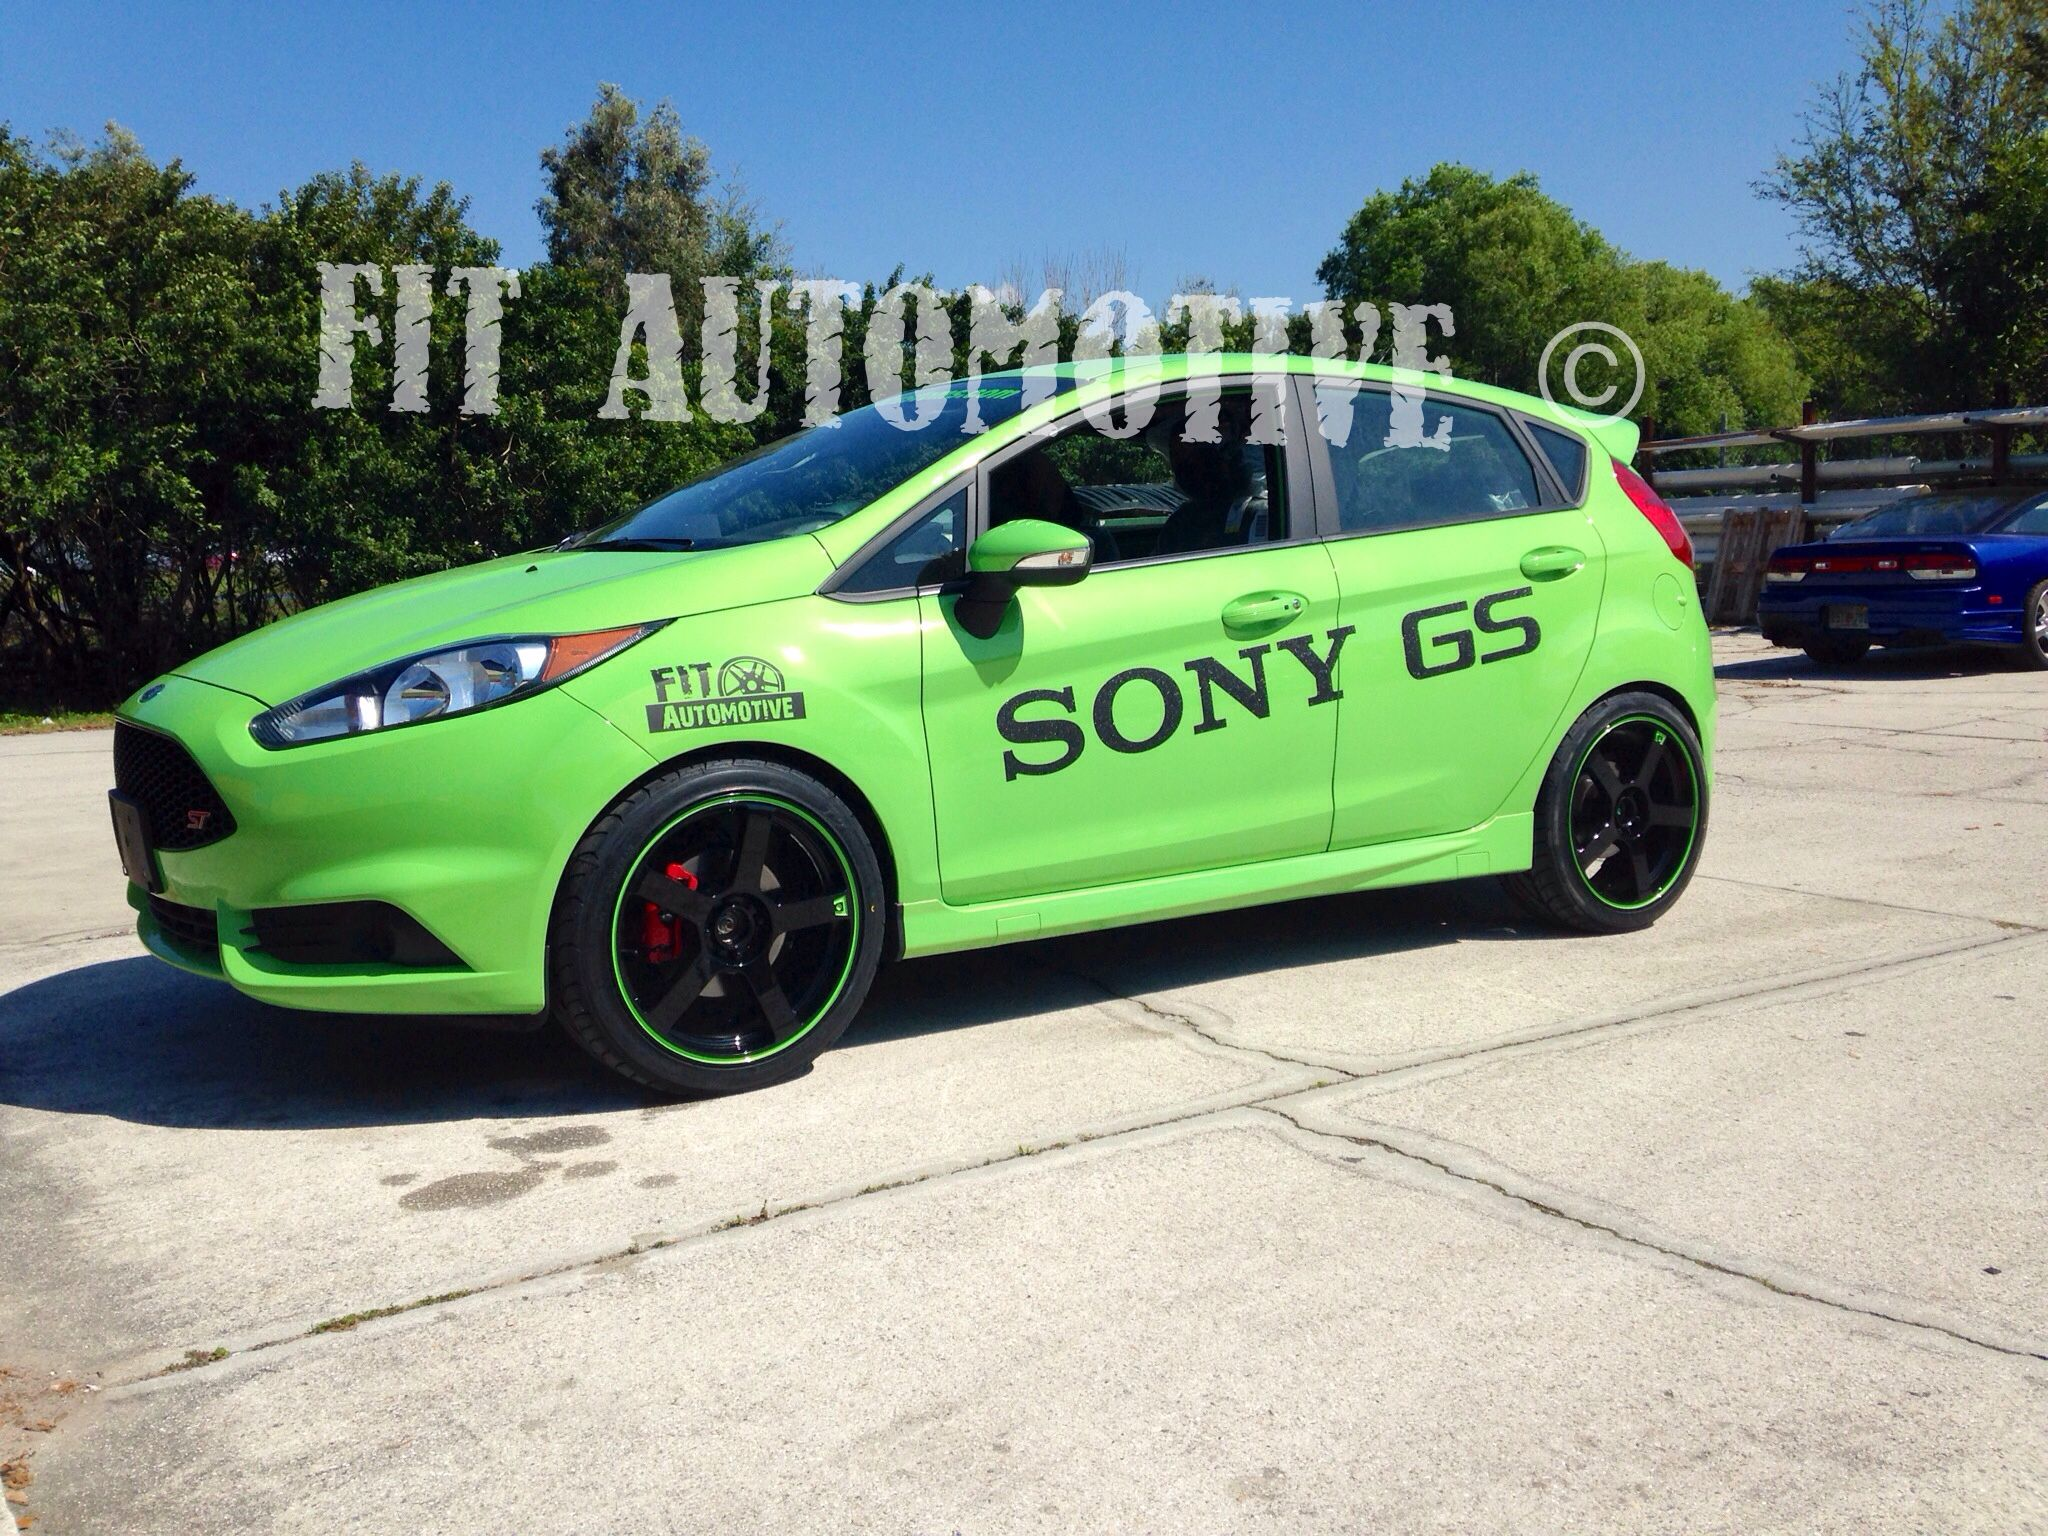 Ford Fiesta St We Did That Was In The Sony Booth Custom Painted Motegi Wheels Wheels Ford Green Ford Fiesta St Custom Trucks Ford Fiesta